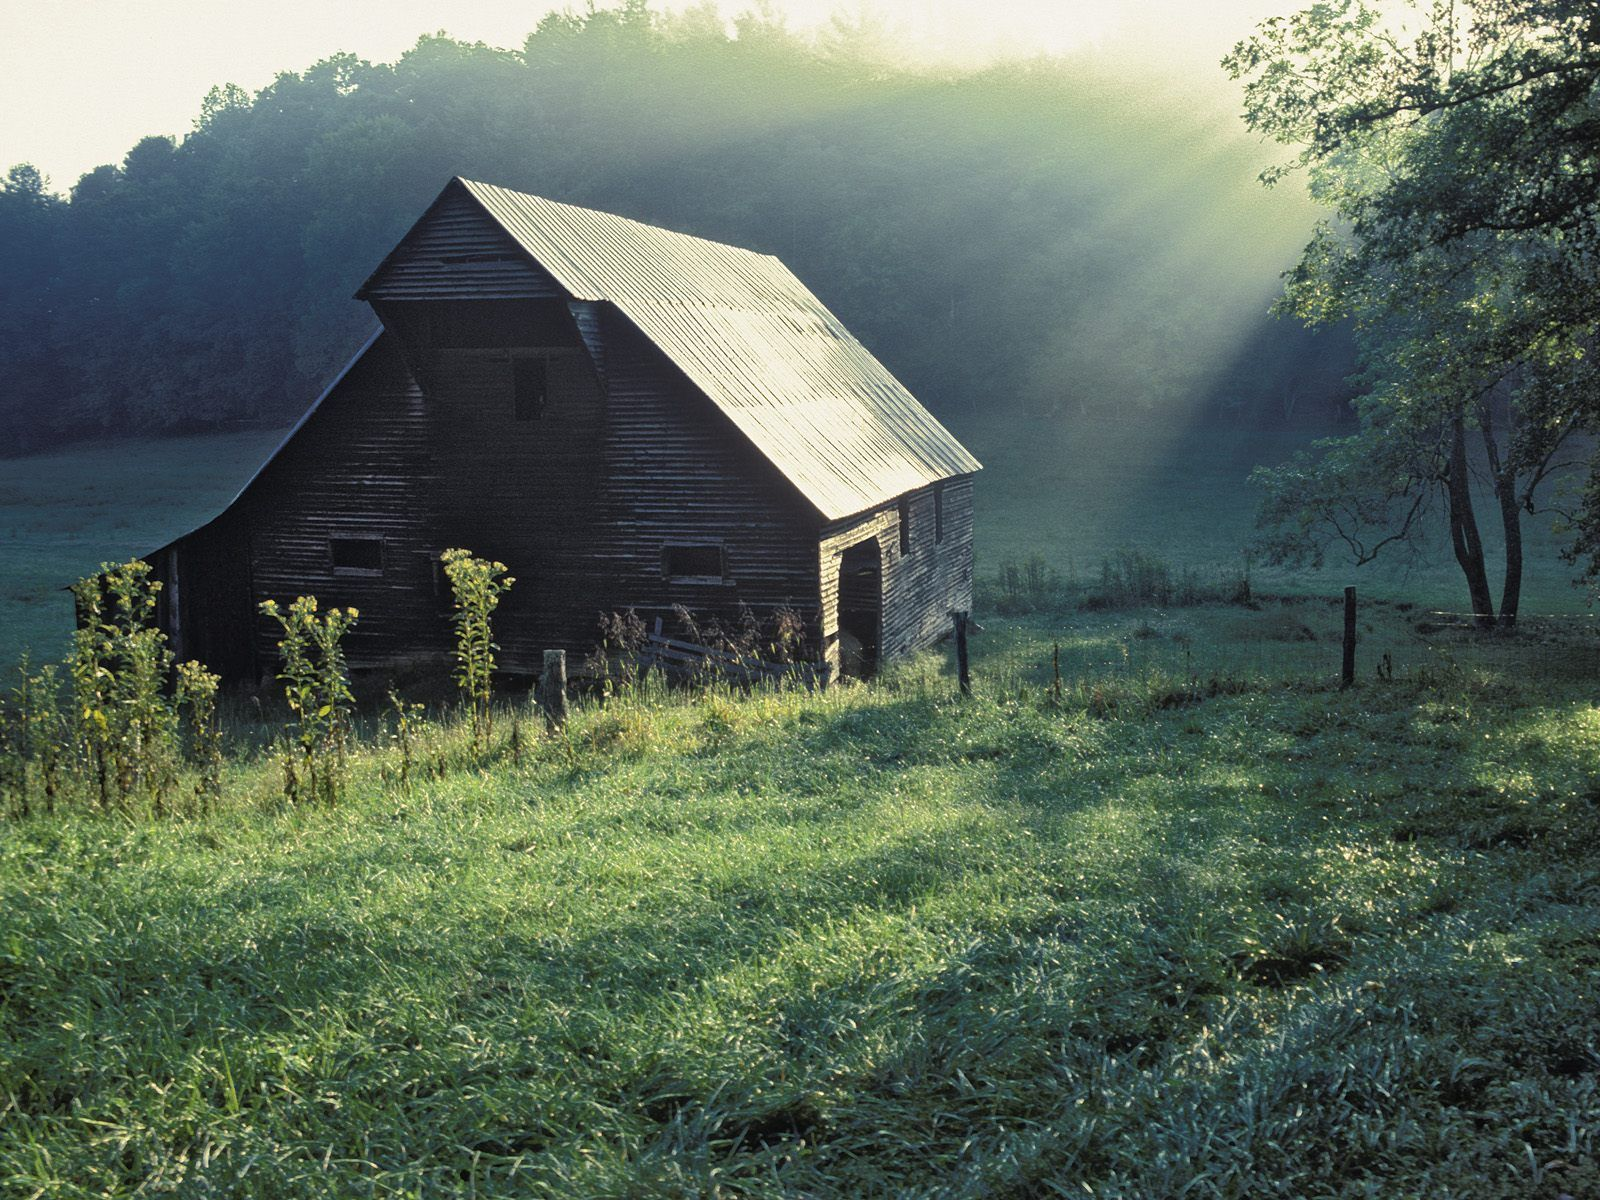 Tennessee. My home :)